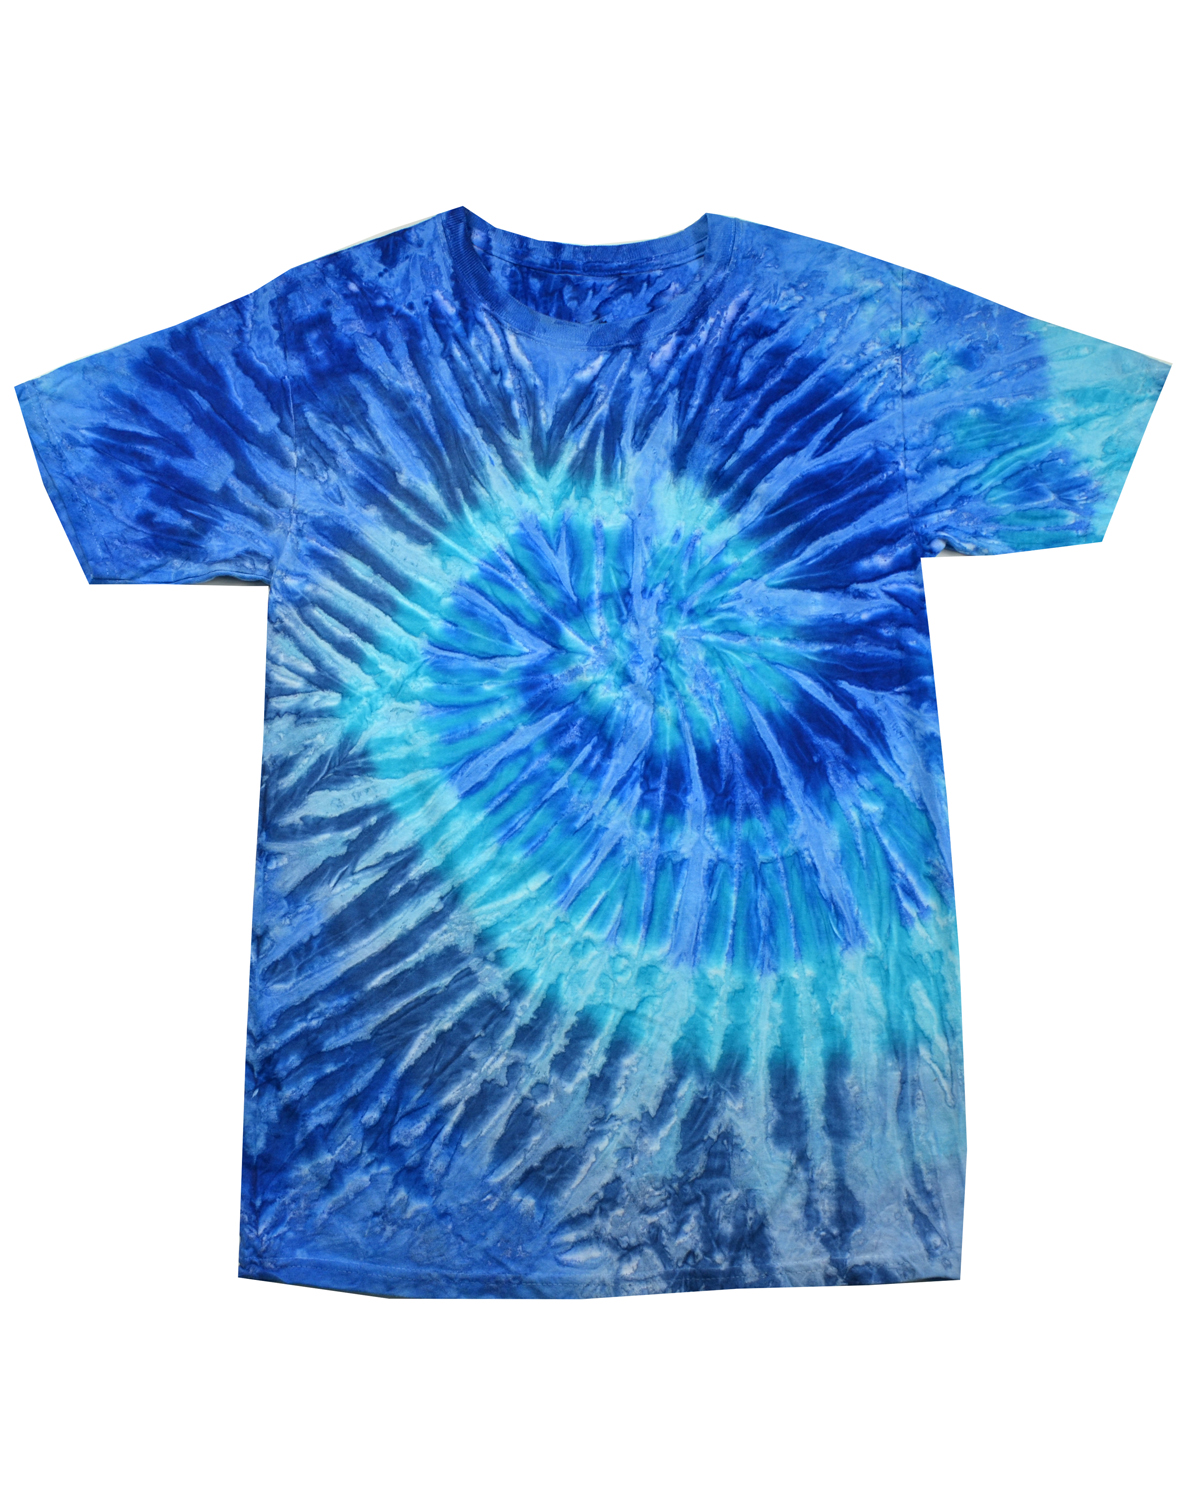 Tie-Dye CD1160 - Drop Ship Toddler T-Shirt